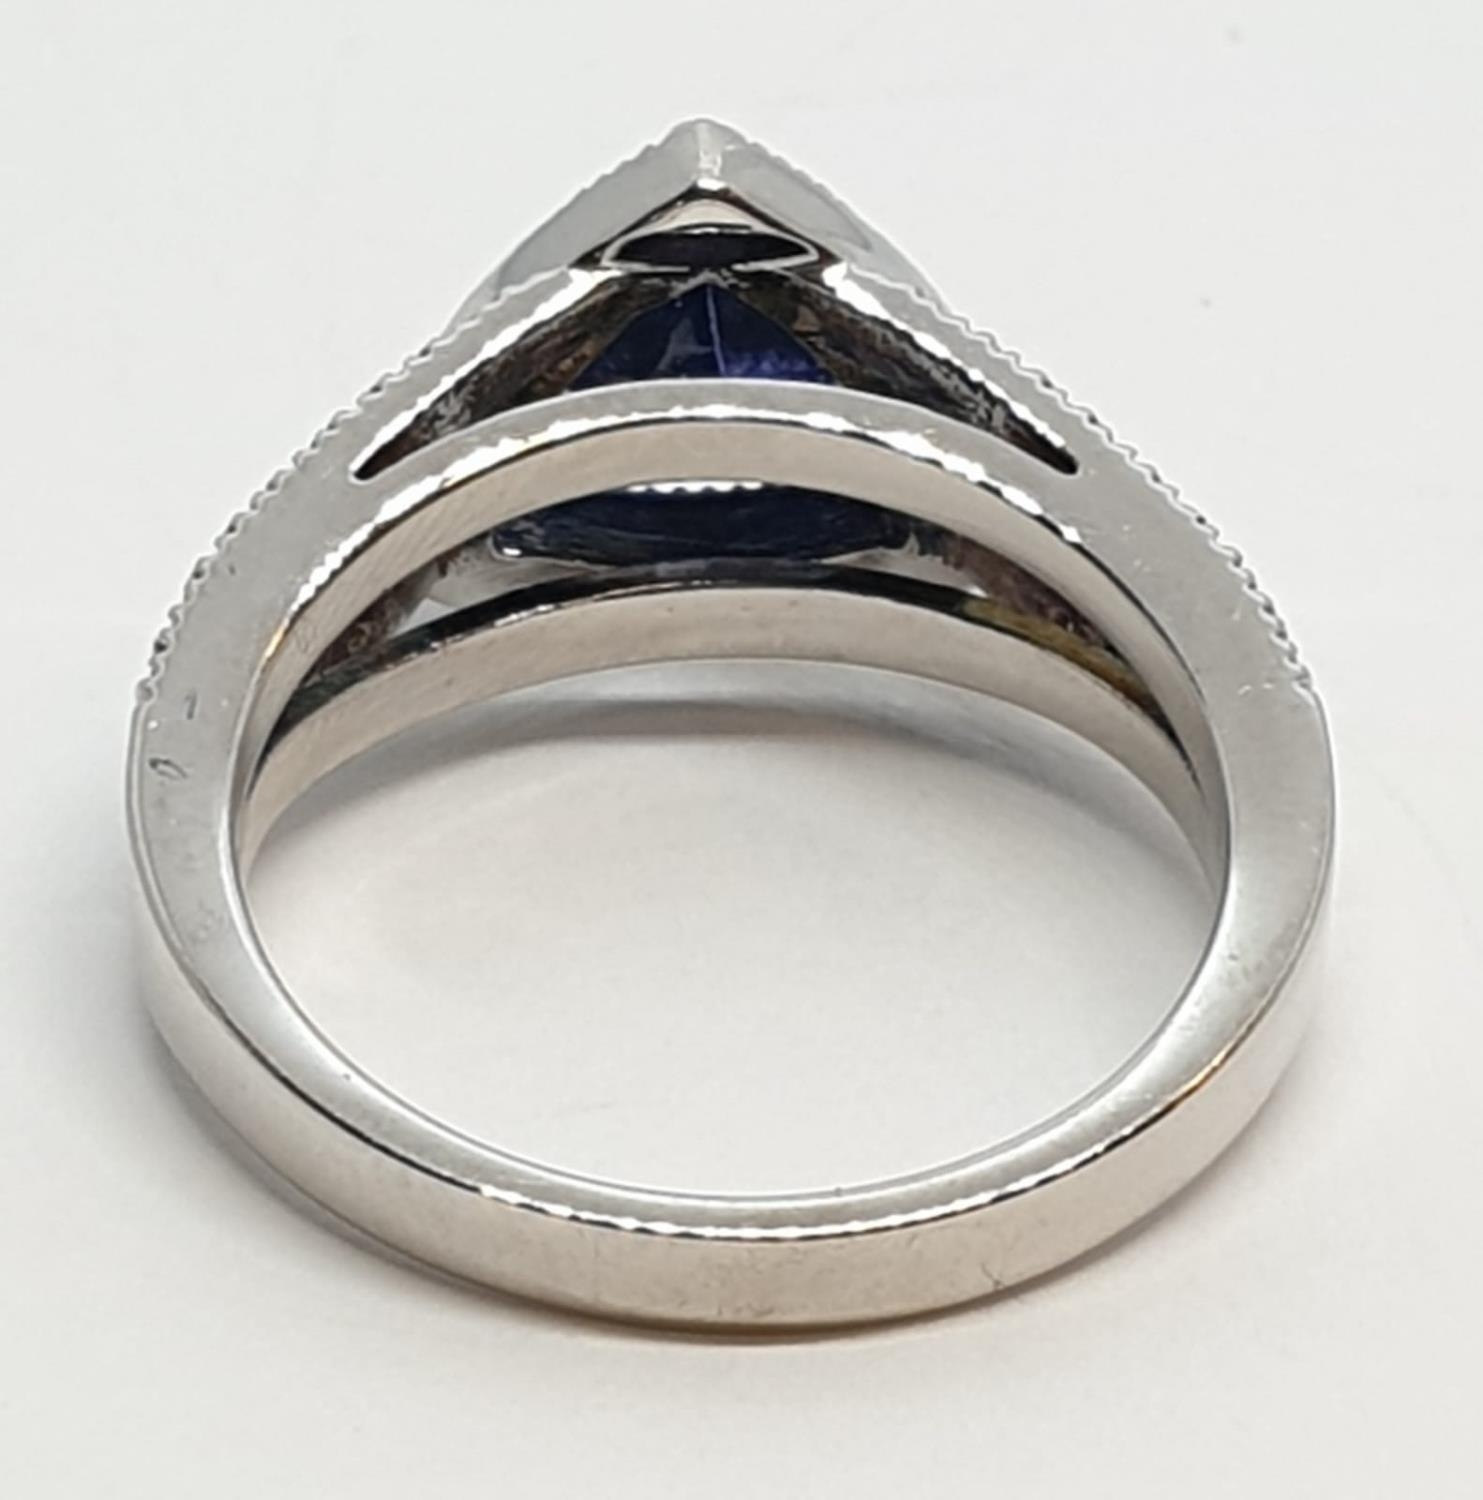 18CT WHITE GOLD RING WITH TRIANGULAR TANZANITE CENTRE AND DIAMONDS ON SHOULDERS, WEIGHT 7G AND - Image 4 of 10